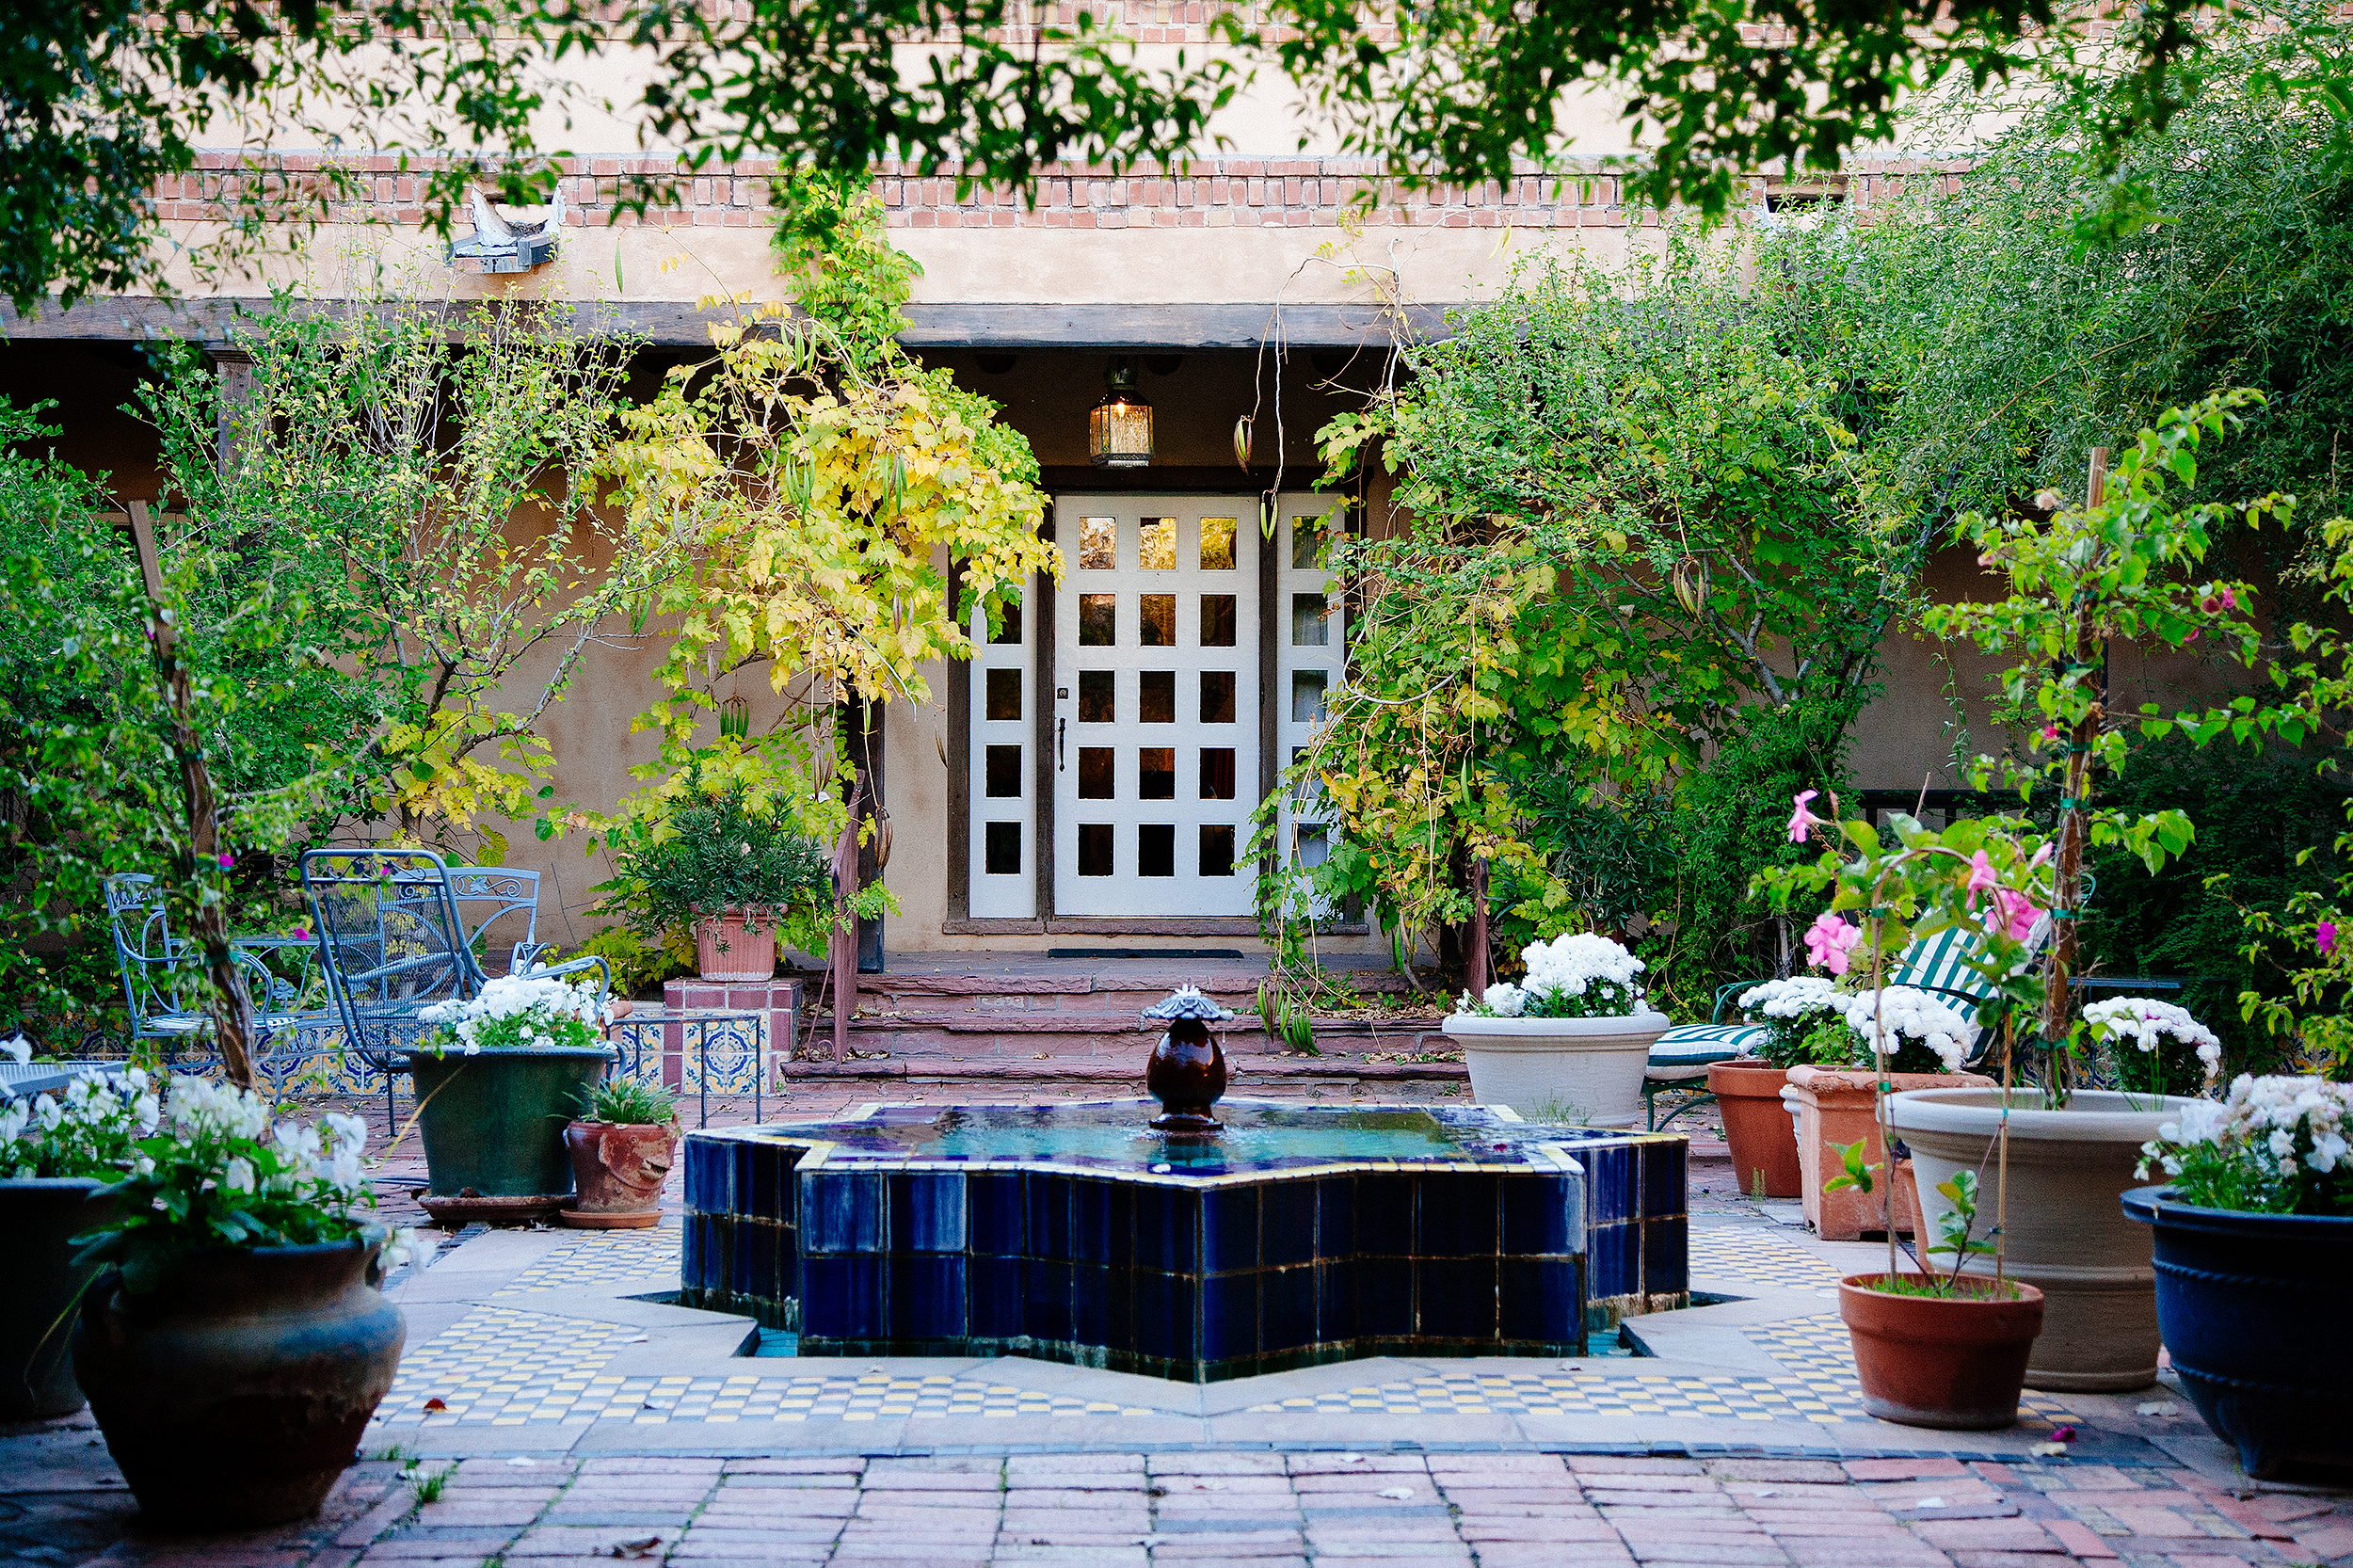 The courtyard at Lost Poblanos, designed by John Gaw Meem